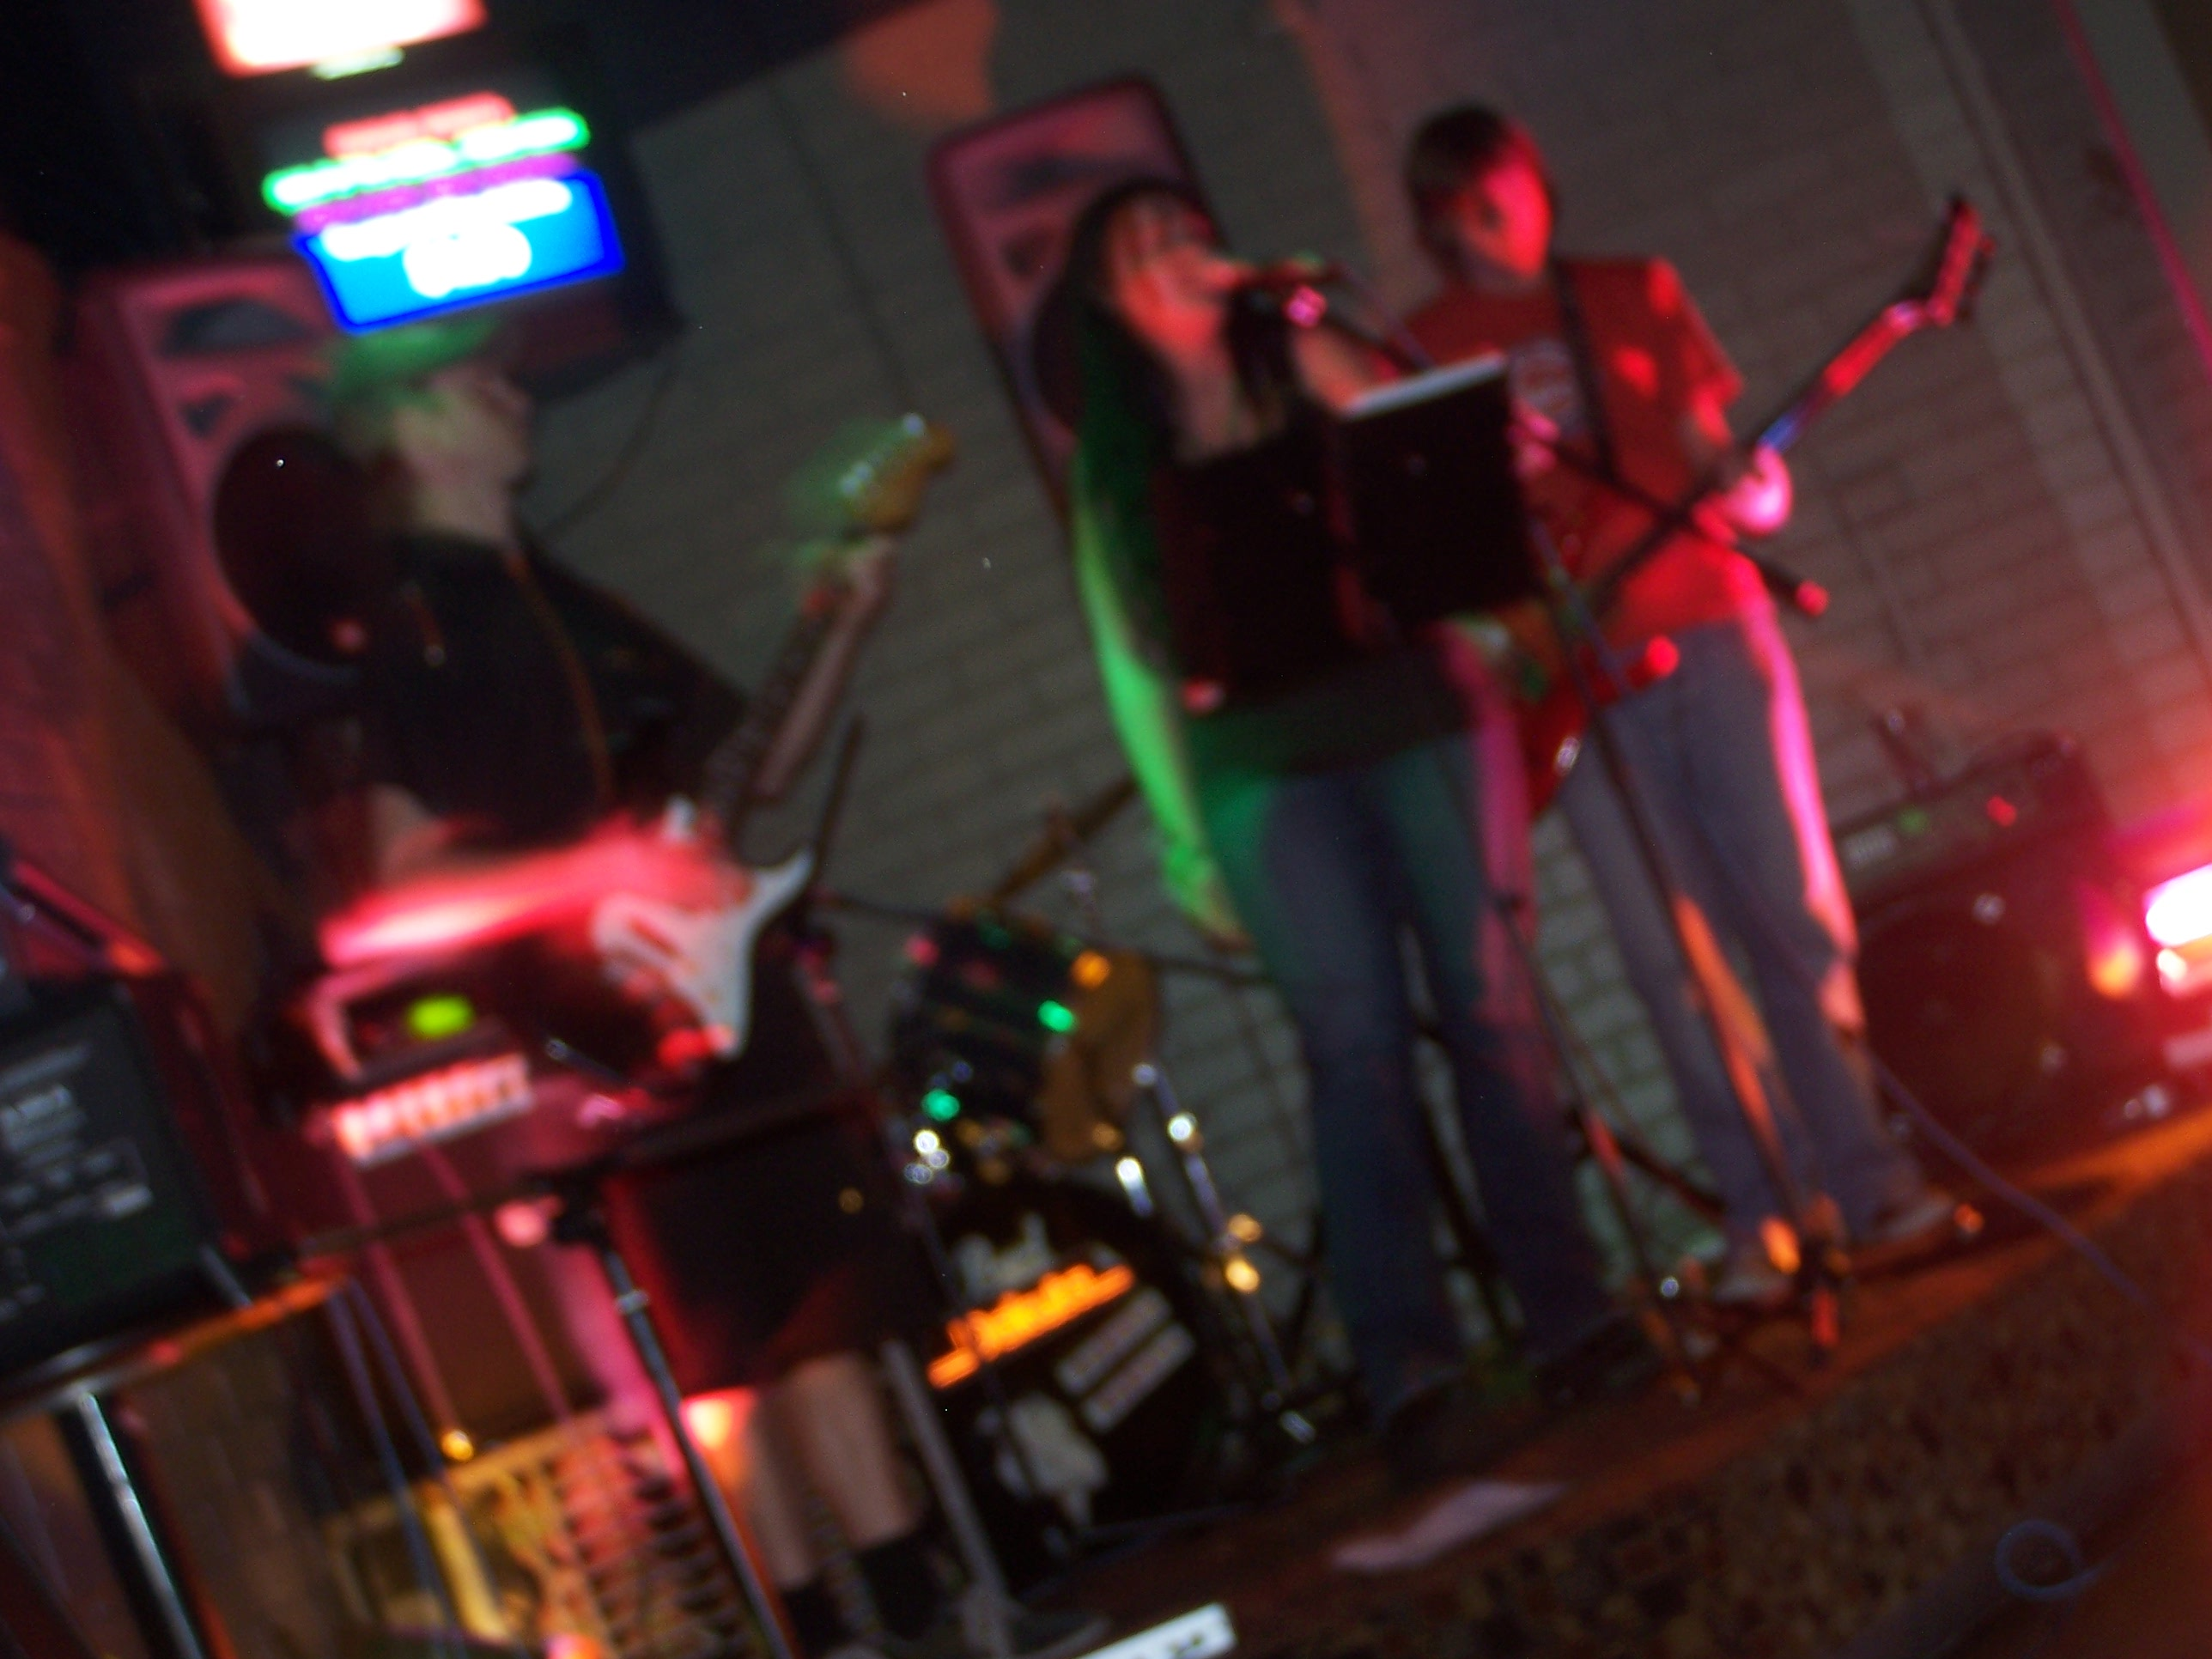 Angie & the Band